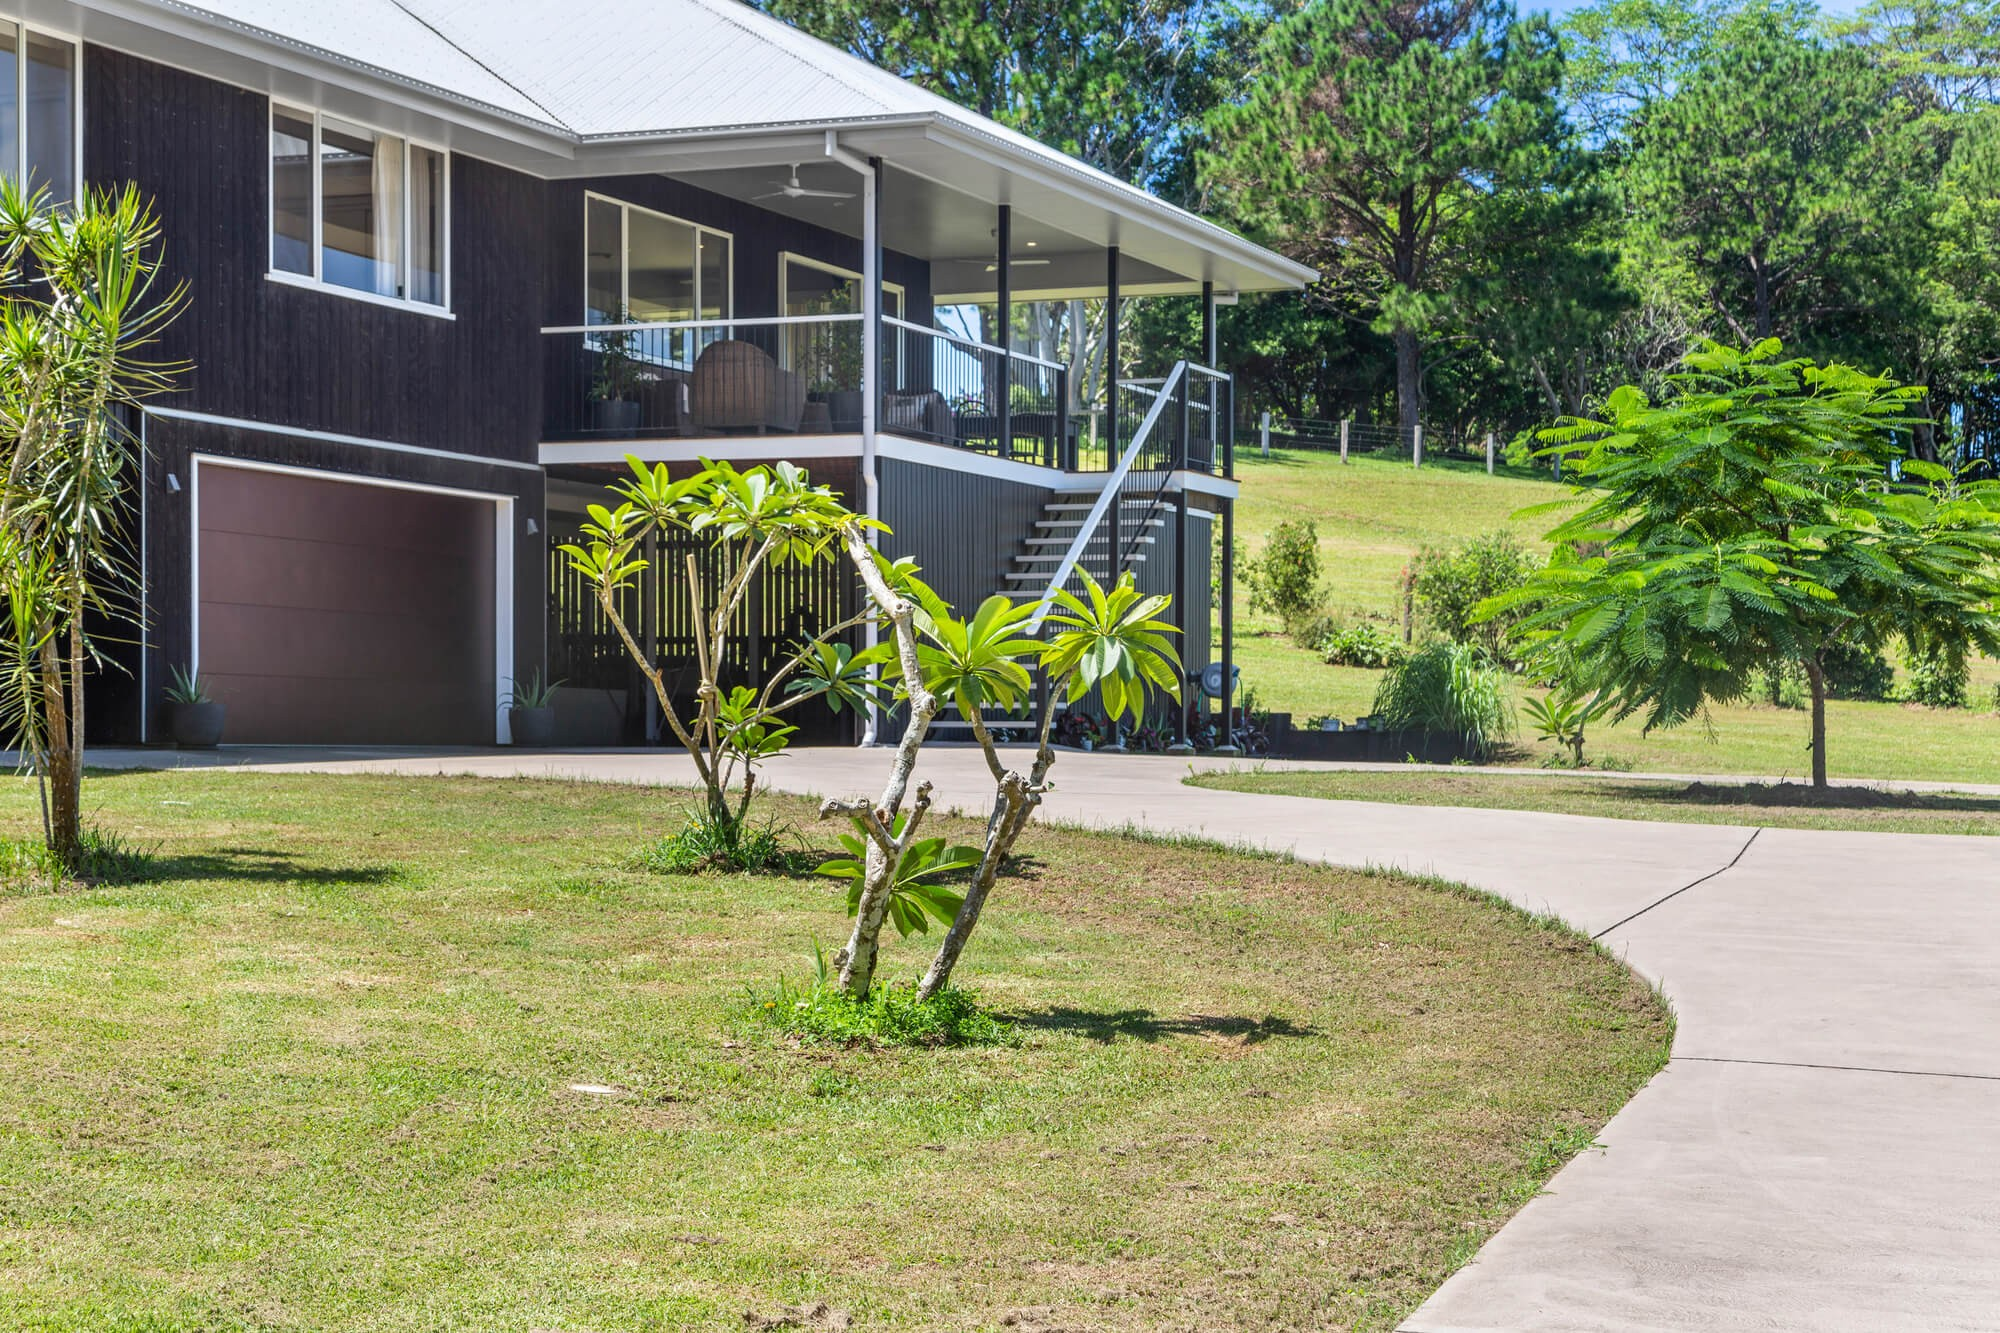 Property for sale 103 McGettigans lane Ewingsdale NSW 2481